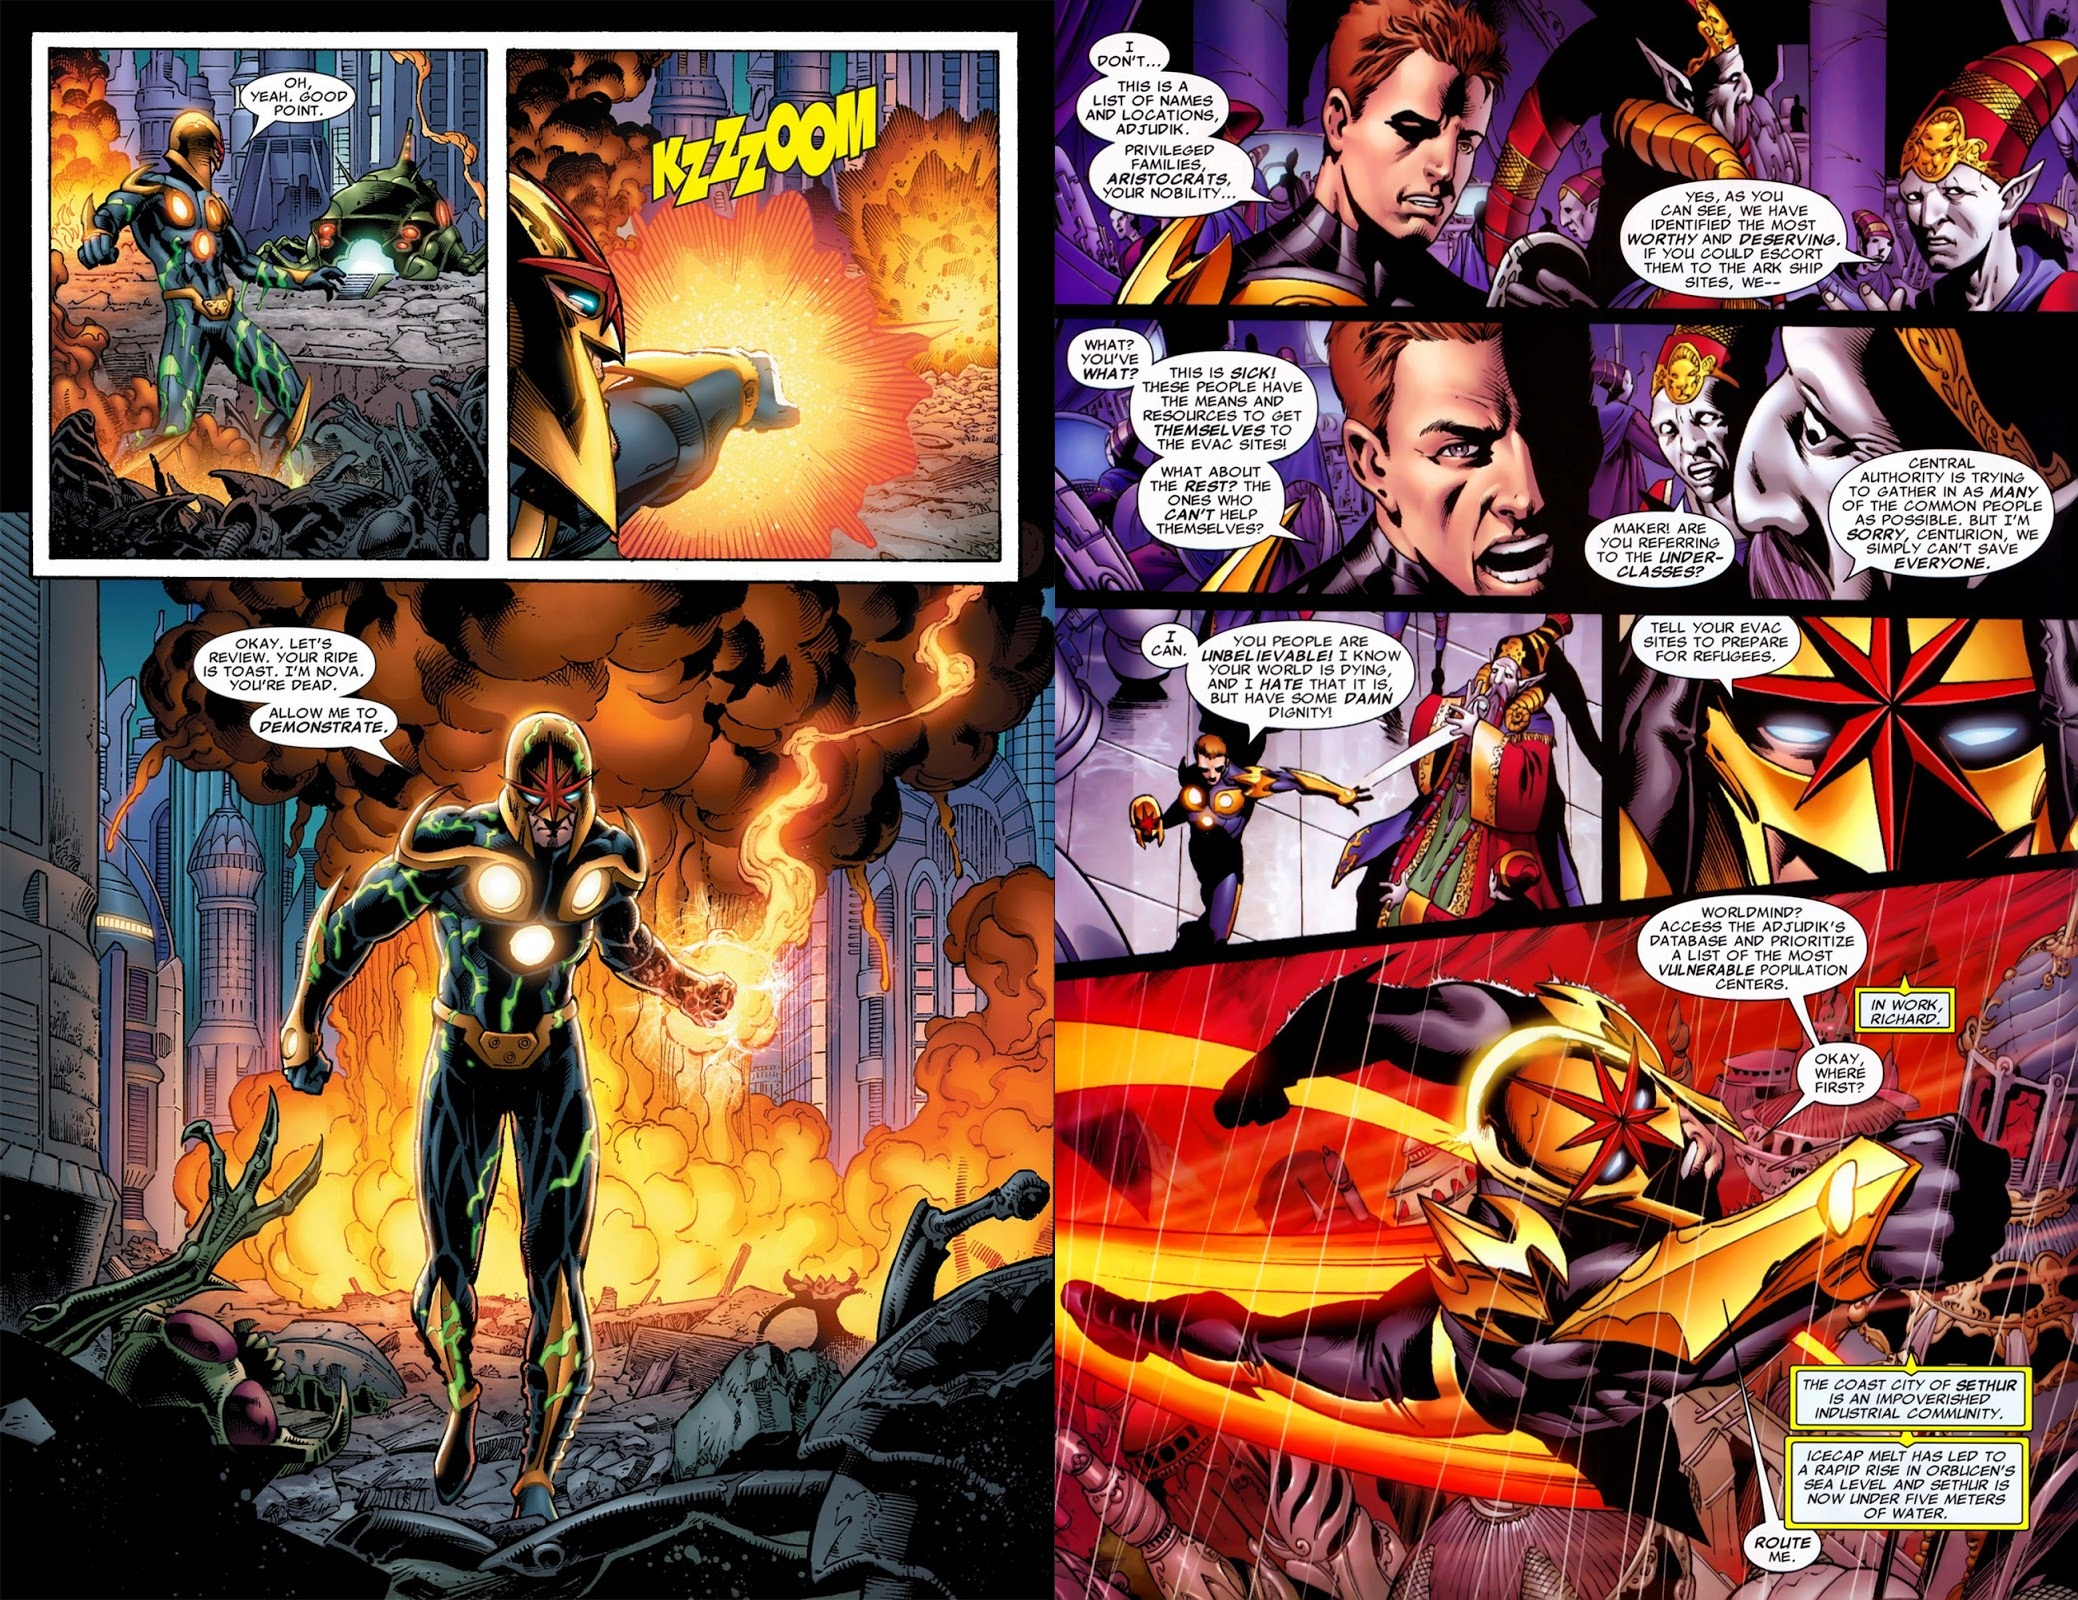 Nova by Abnett & Lanning The Complete Collection v1 review